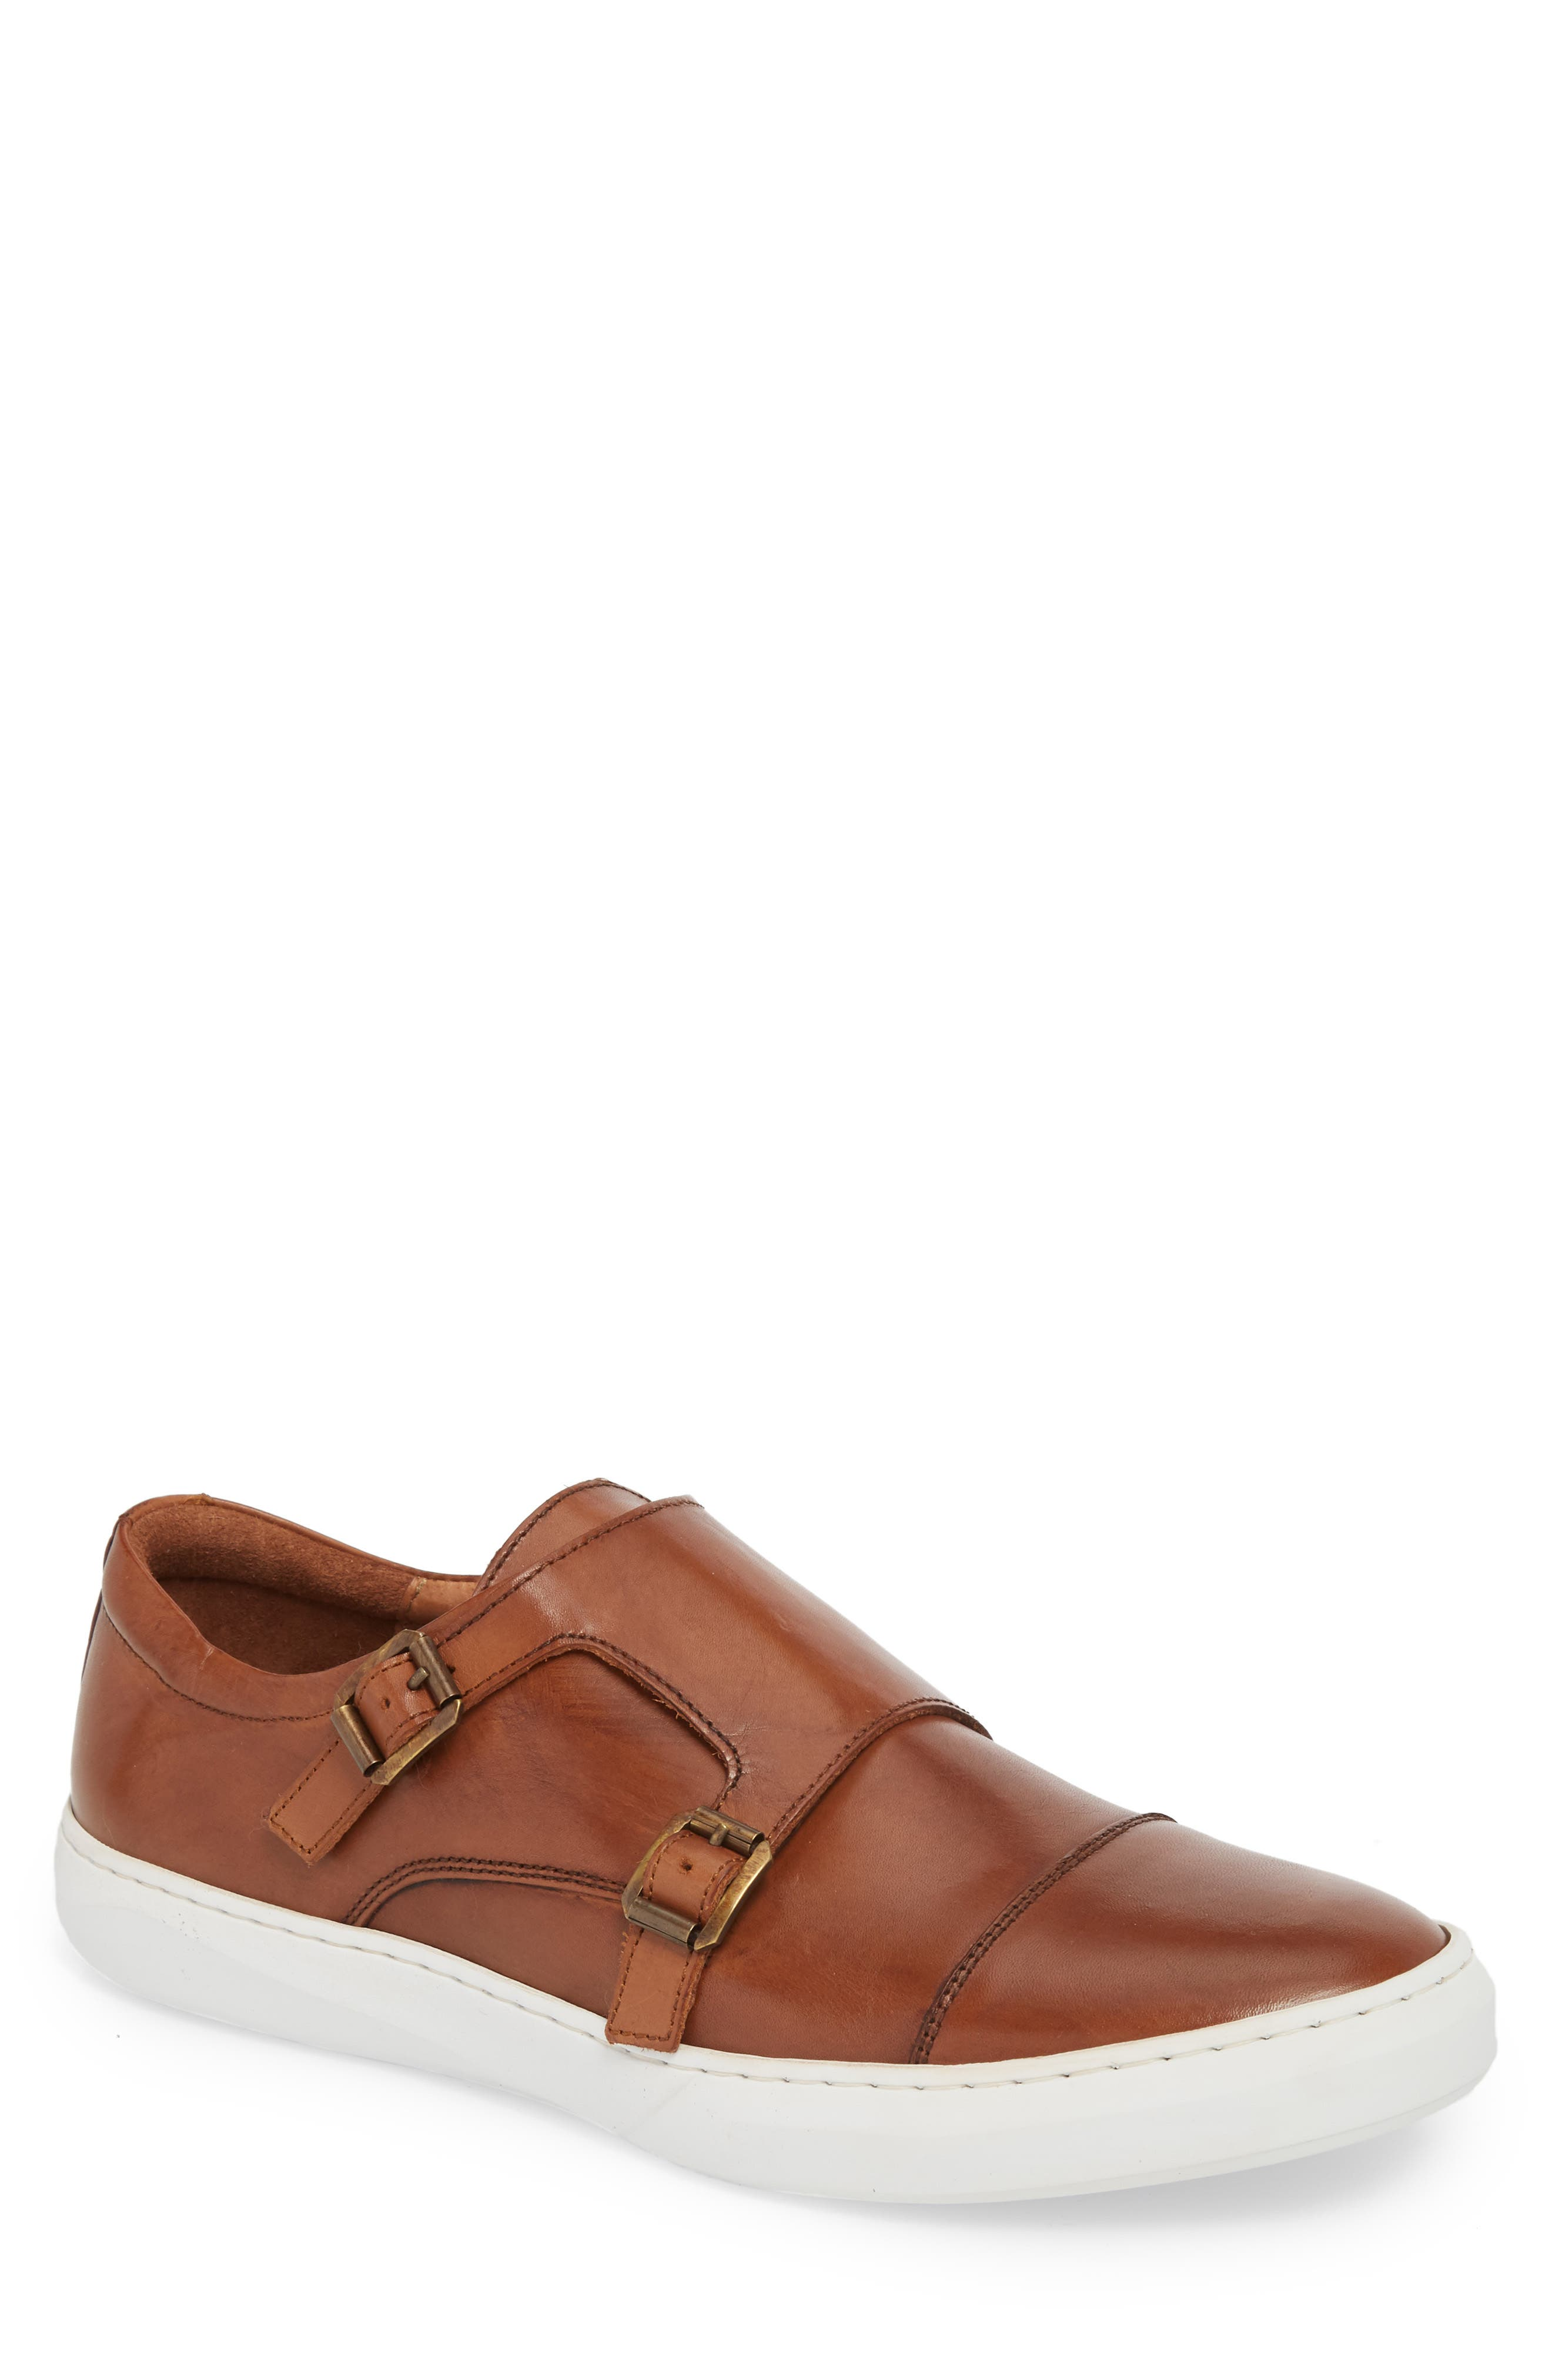 KENNETH COLE NEW YORK Whyle Double Strap Monk Sneaker, Main, color, COGNAC LEATHER